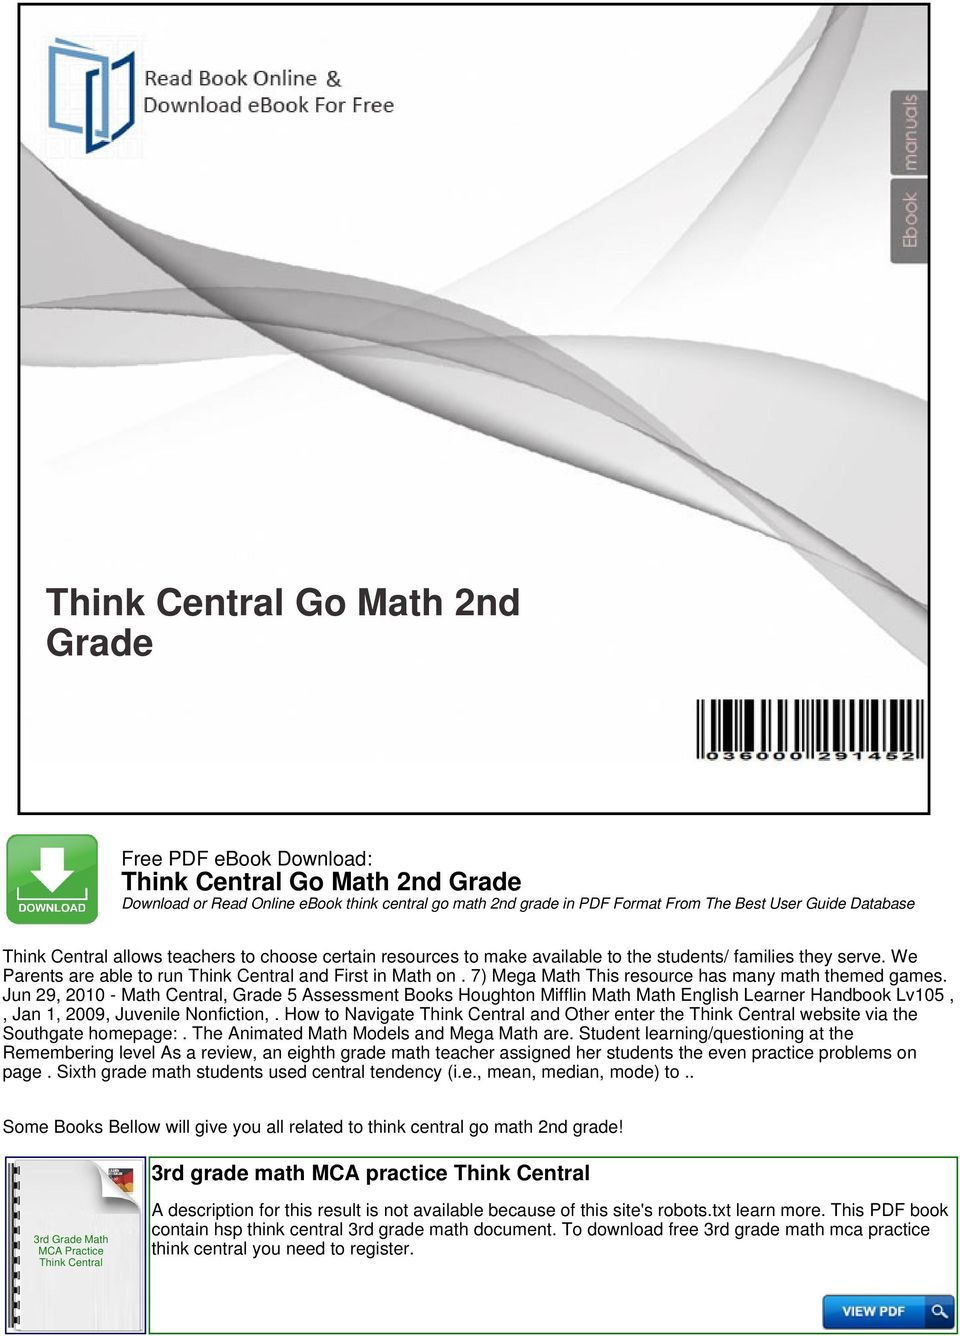 Think Central Go Math 2nd Grade Pdf